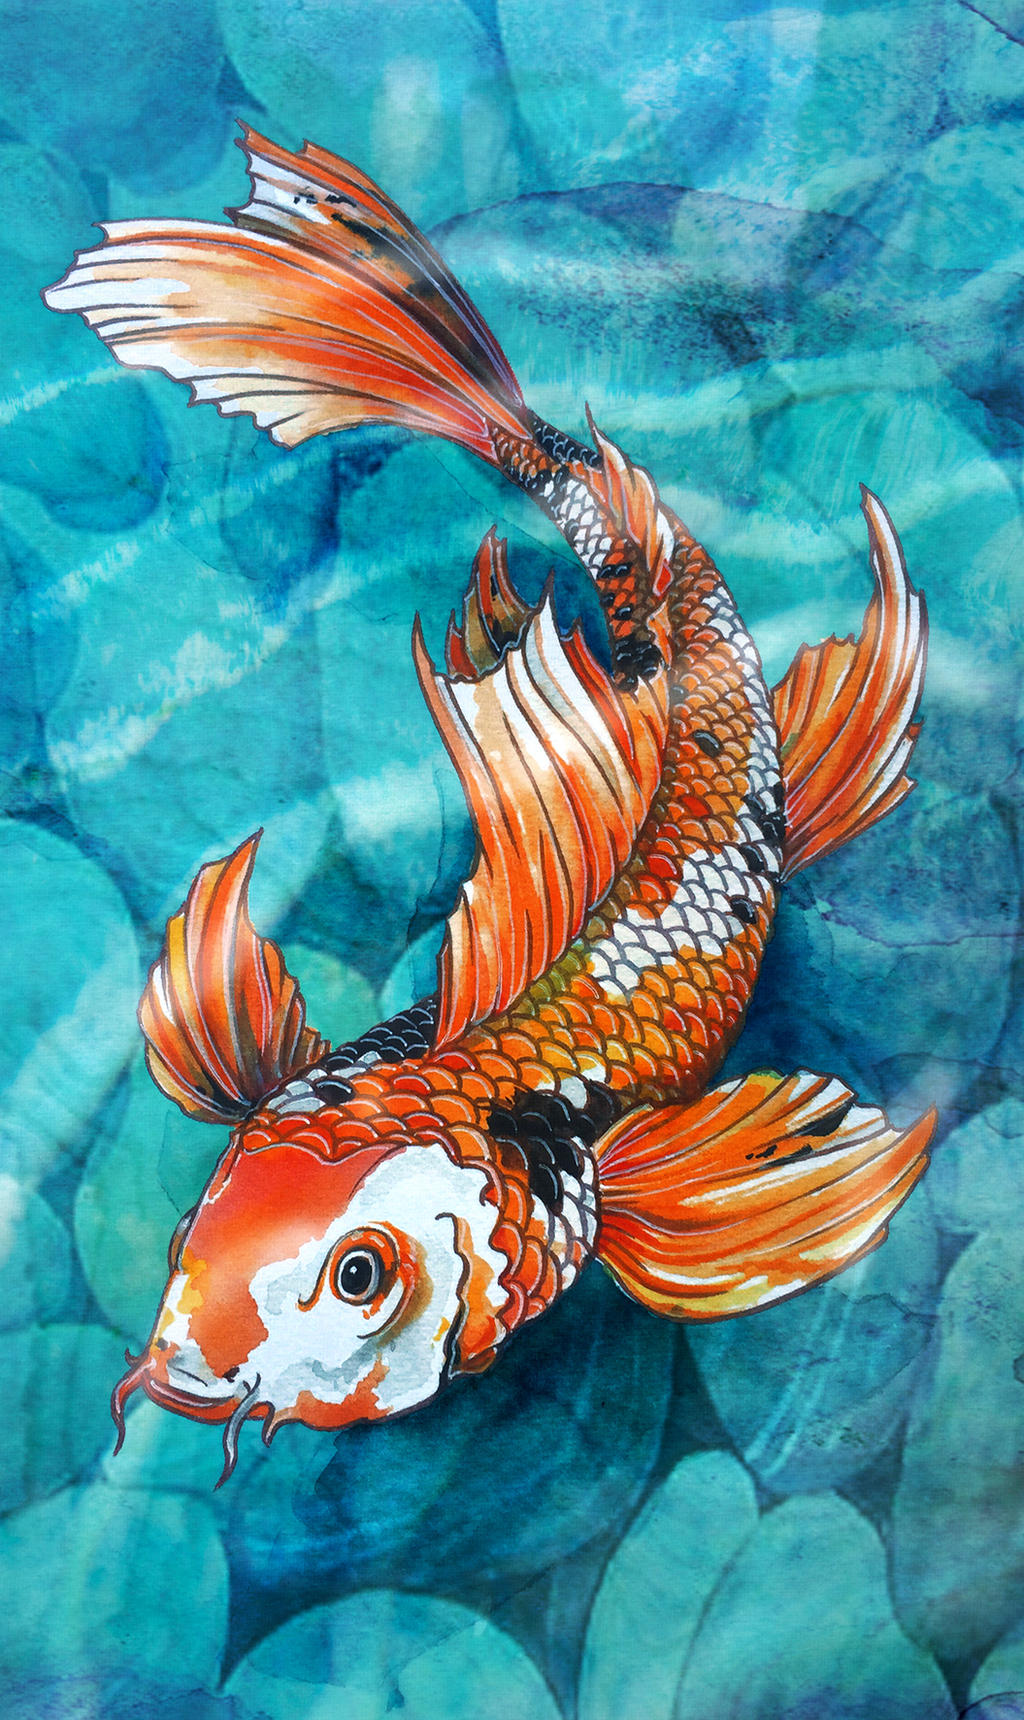 Koi by dacdacgirl on deviantart for Where can i buy koi fish